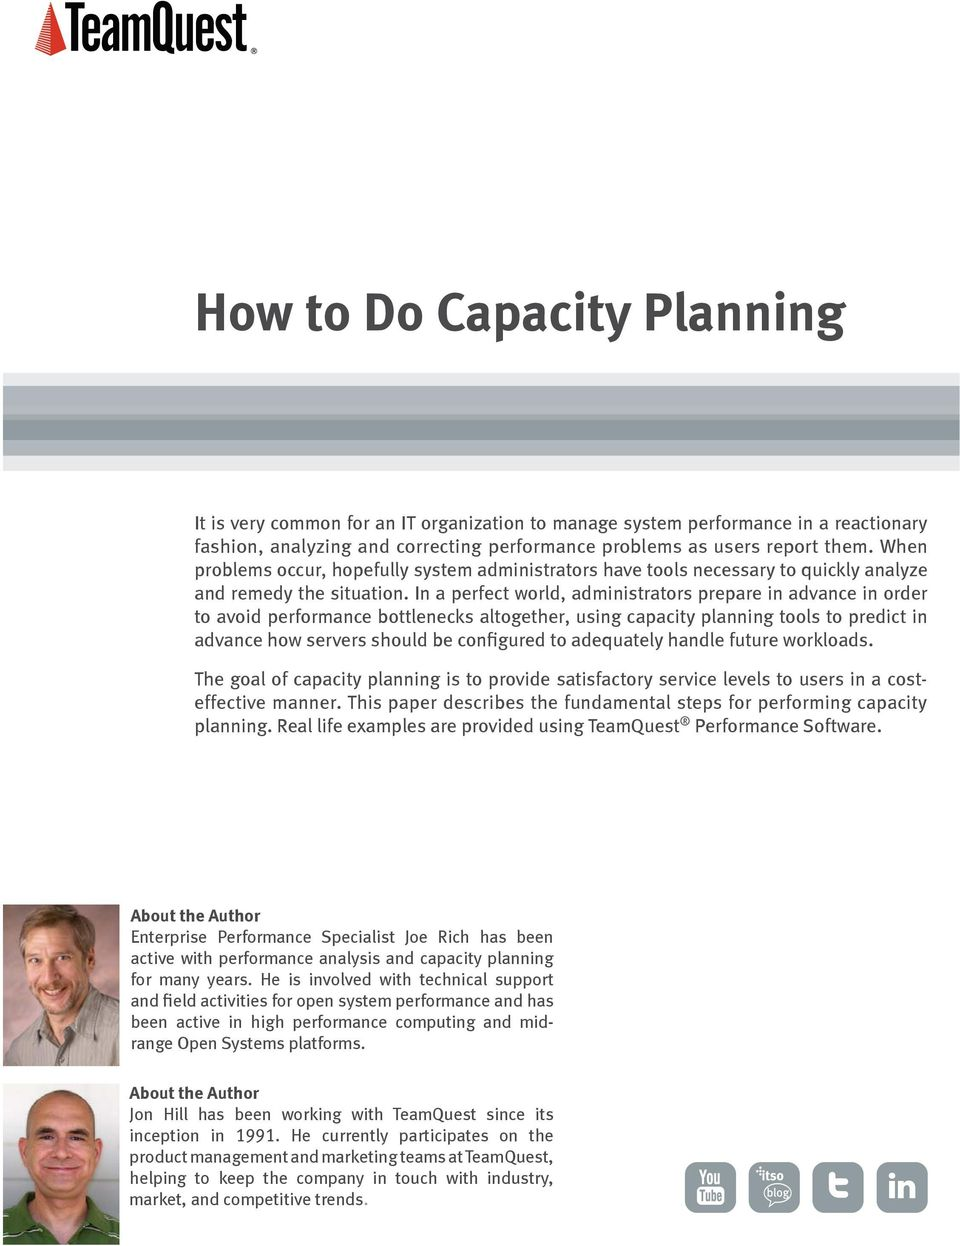 In a perfect world, administrators prepare in advance in order to avoid performance bottlenecks altogether, using capacity planning tools to predict in advance how servers should be configured to